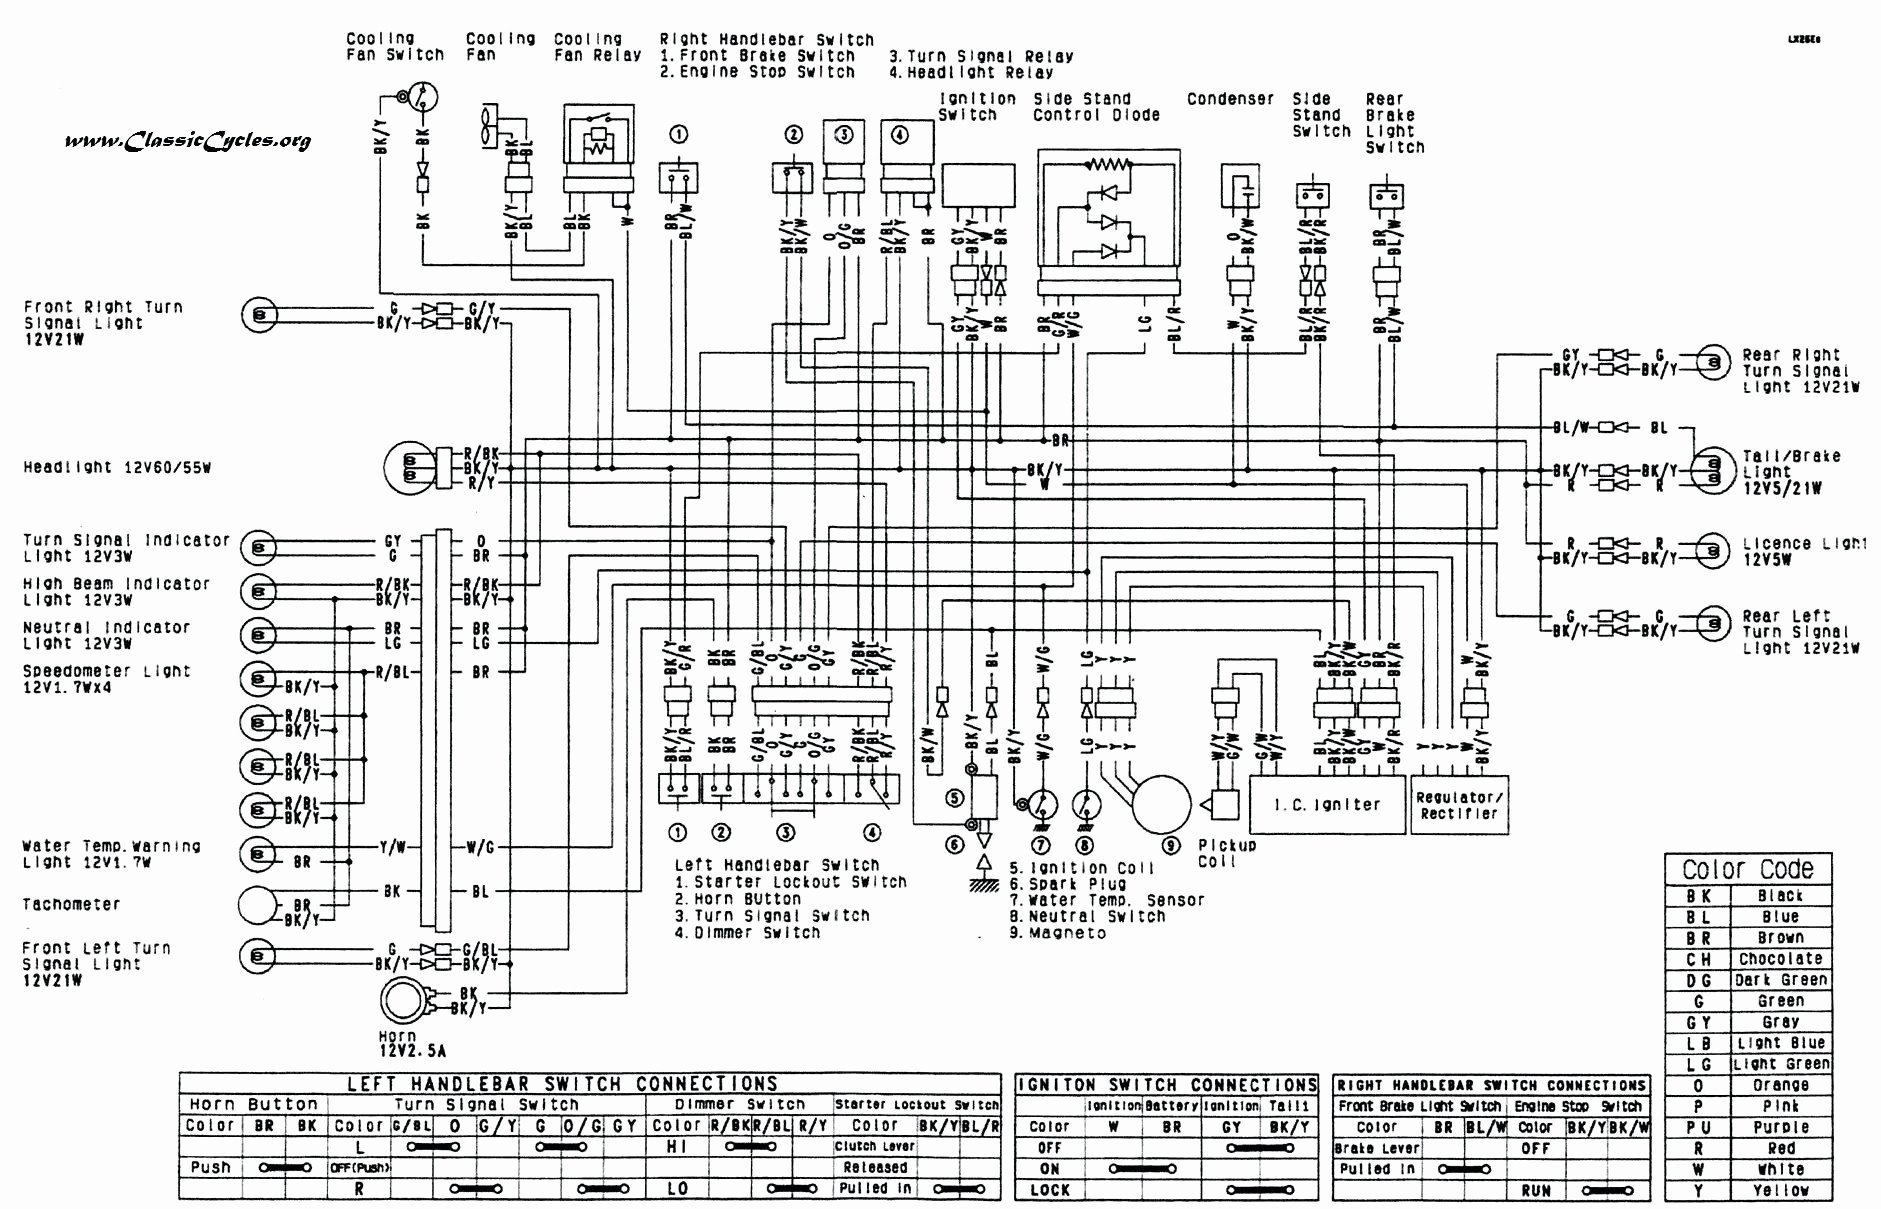 DIAGRAM] Hx Chiller Wiring Diagram FULL Version HD Quality Wiring Diagram -  DIAGRAMNOW.FESTIVALACQUEDOTTE.IT | Hx Chiller Wiring Diagram |  | Diagram Database